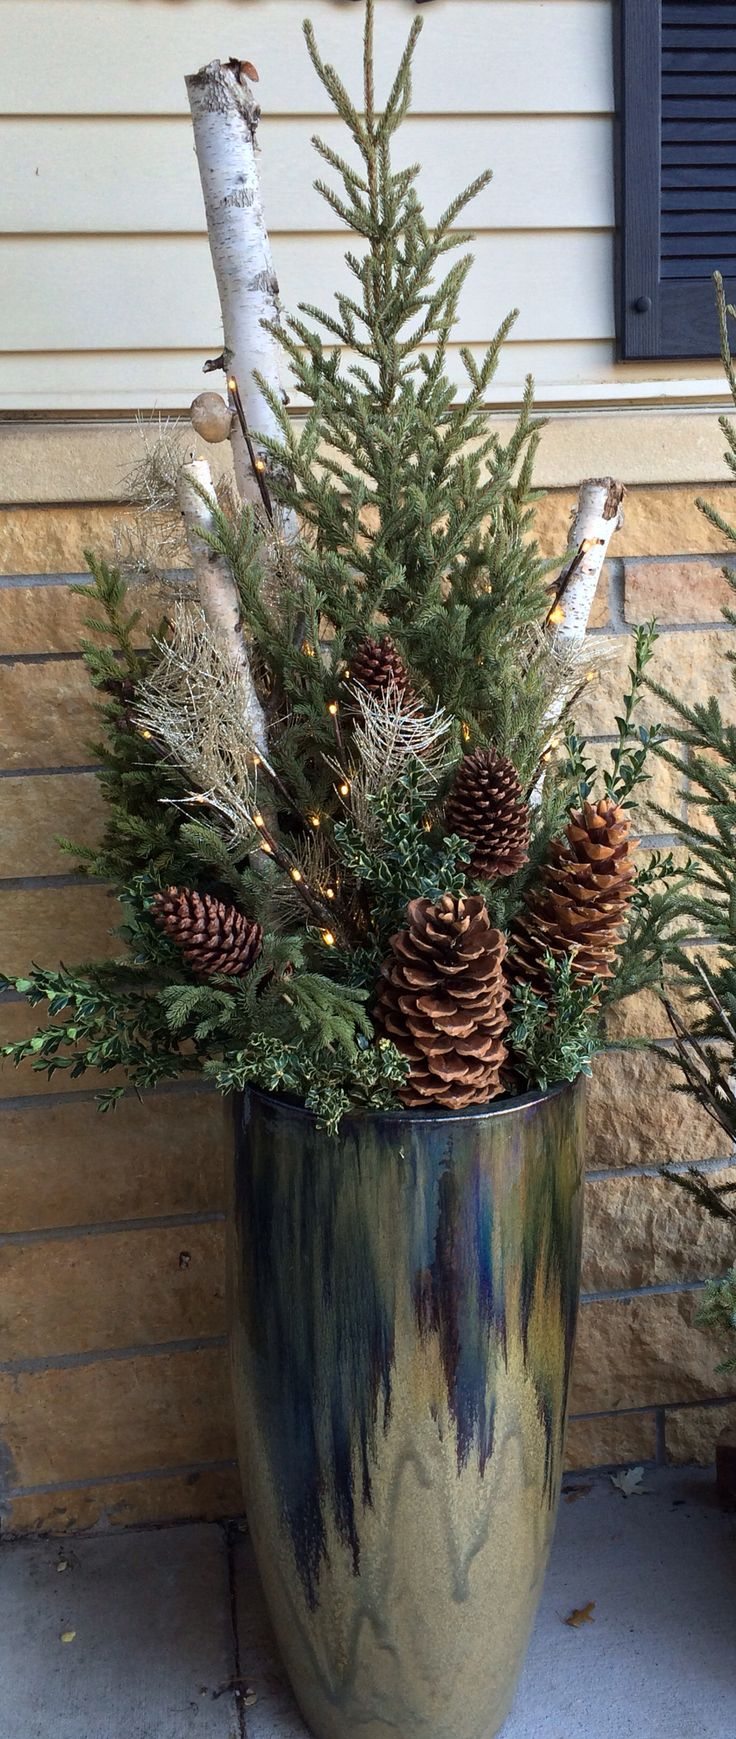 Preparing Your Garden for Winter #Garden_for_Winter : Jeffery Pine Cones make amazing outdoor Decorations: https://houseofcones.com/collections/pine-tree-cones/products/pine-cones-for-wreaths